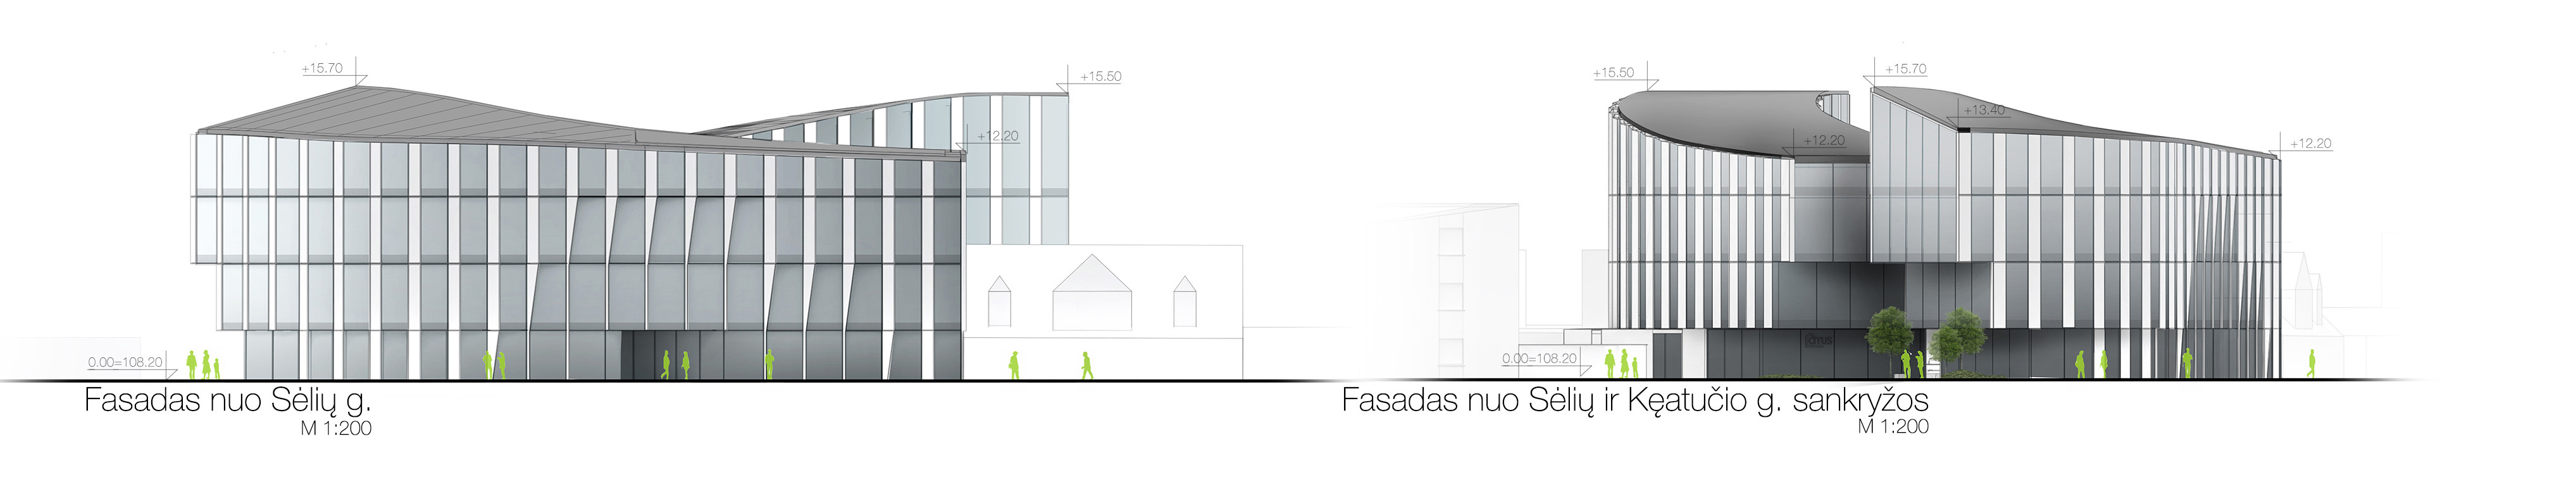 Elevations of the building